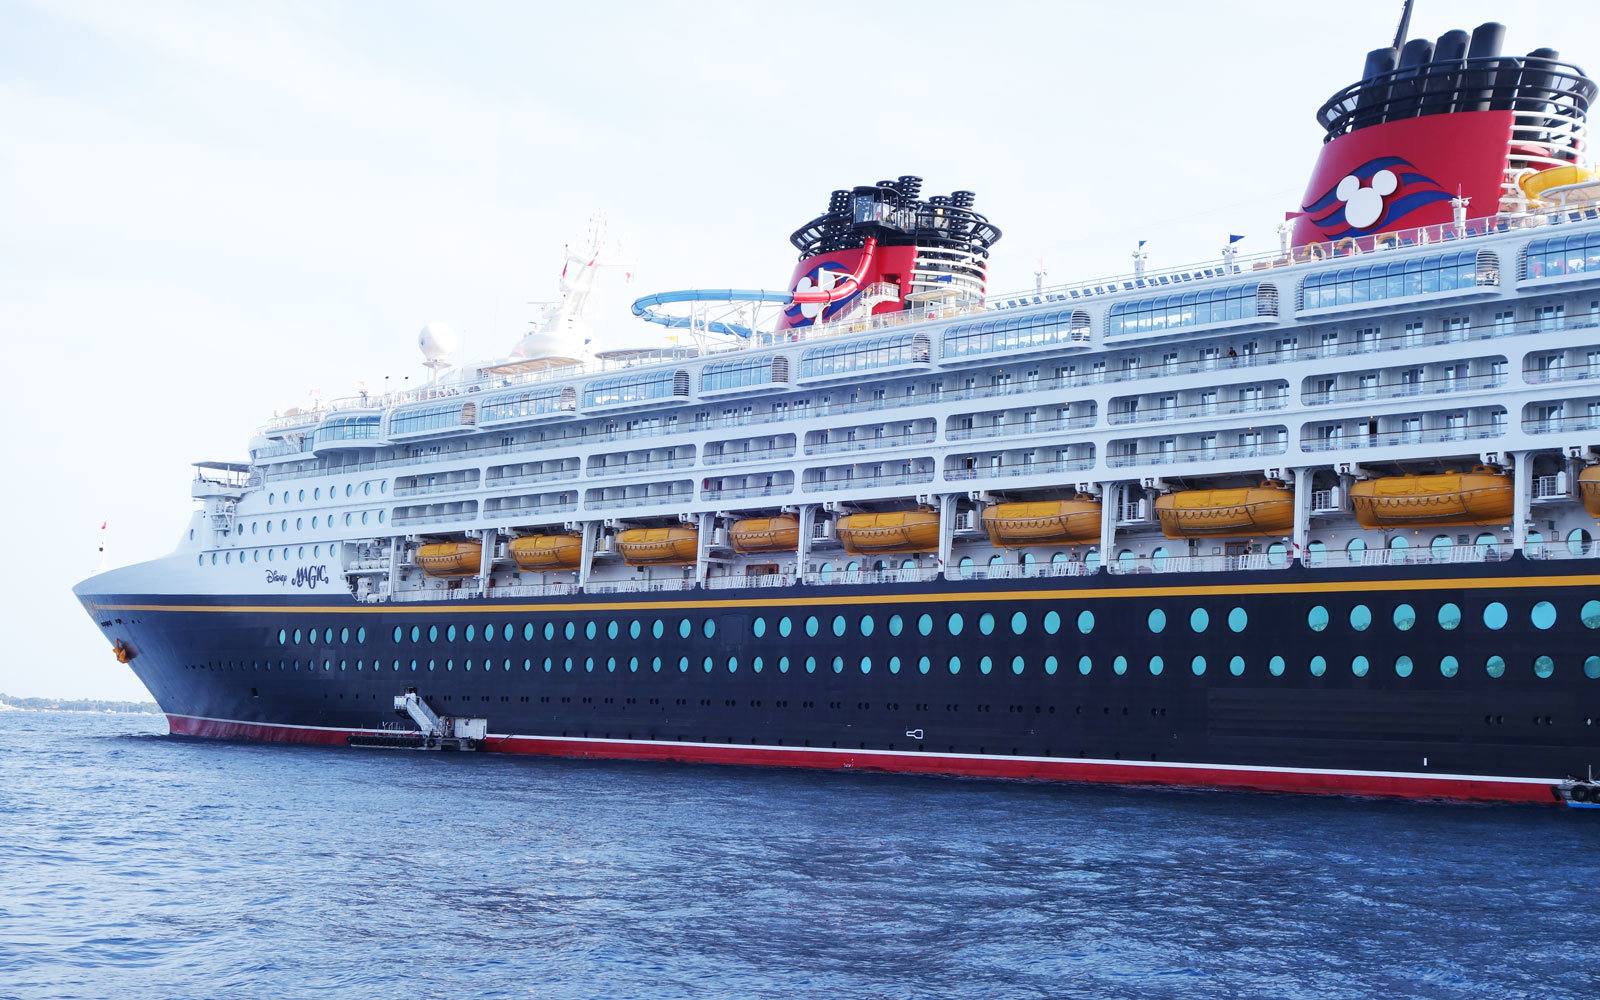 15 Sneaky Disney Cruise Tips Thatll Actually Help You Save Money